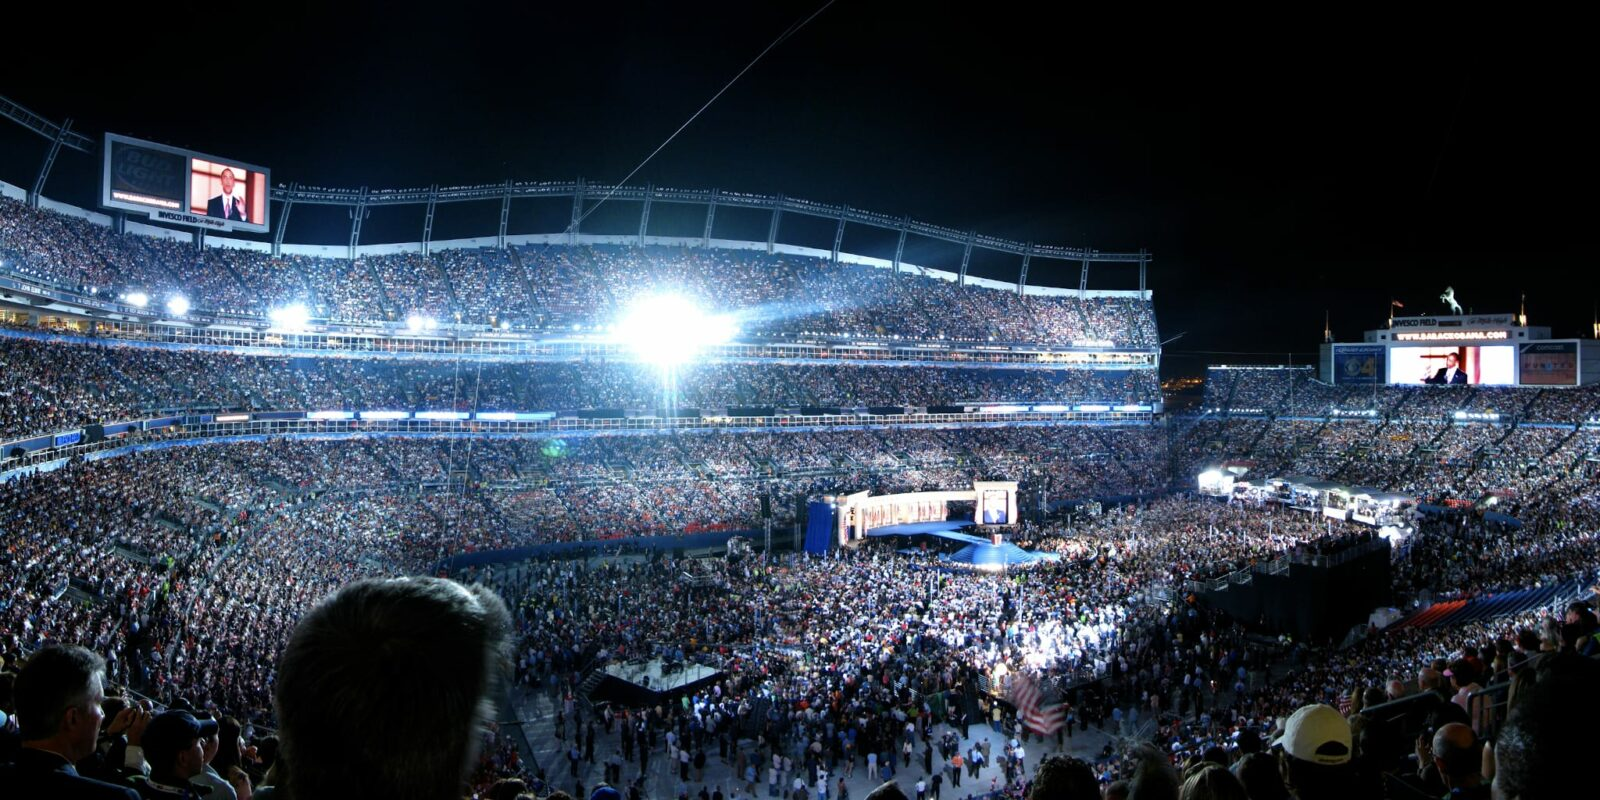 Democratic National Convention 2008 Obama Speech Mile High Stadium